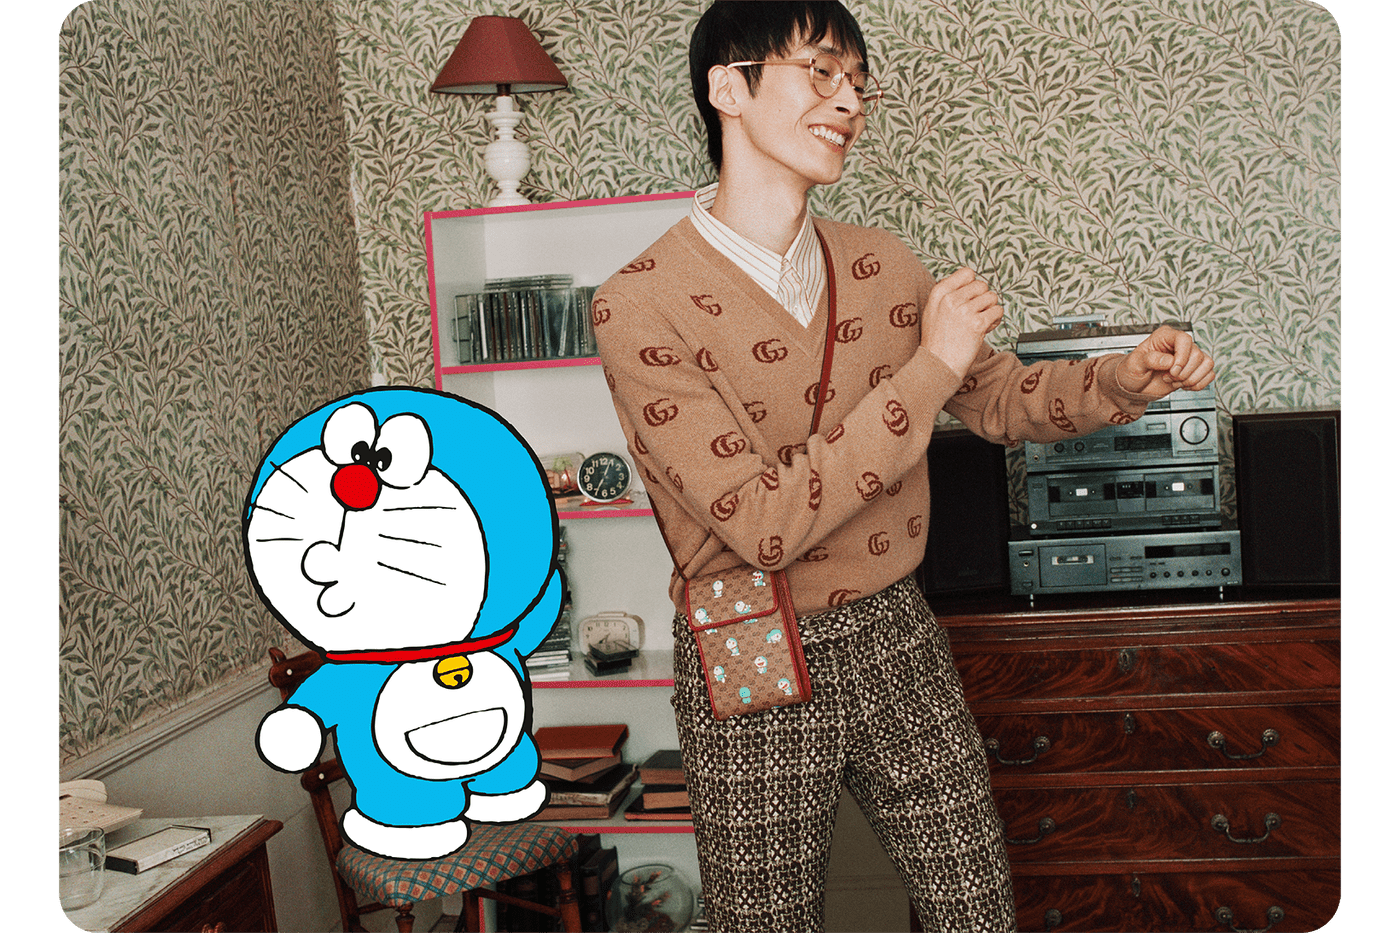 doraemon gucci collaboration collection lunar chinese new year campaign handbags phone cases sneakers release